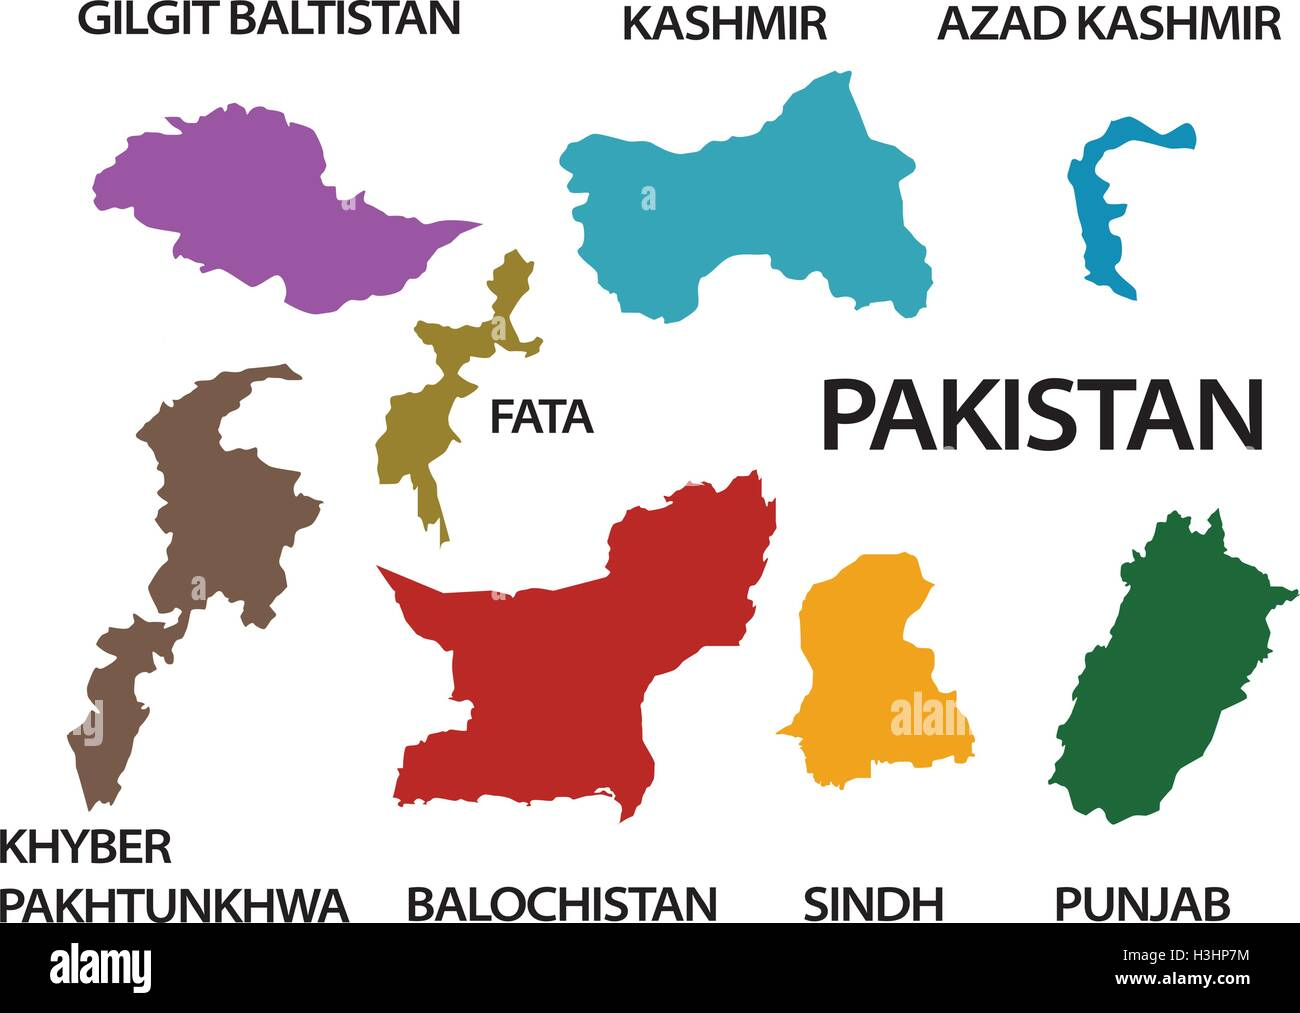 stan Map Vector Stock Photos & stan Map Vector Stock Images ... Khyber P Map on kyber pass map, pangea map, mystara map, sargodha map, immoren map, bajaur agency map, bactria map, pakistani taliban map, afghan map, narowal map, blarney stone map, karbala map, pakistan map,